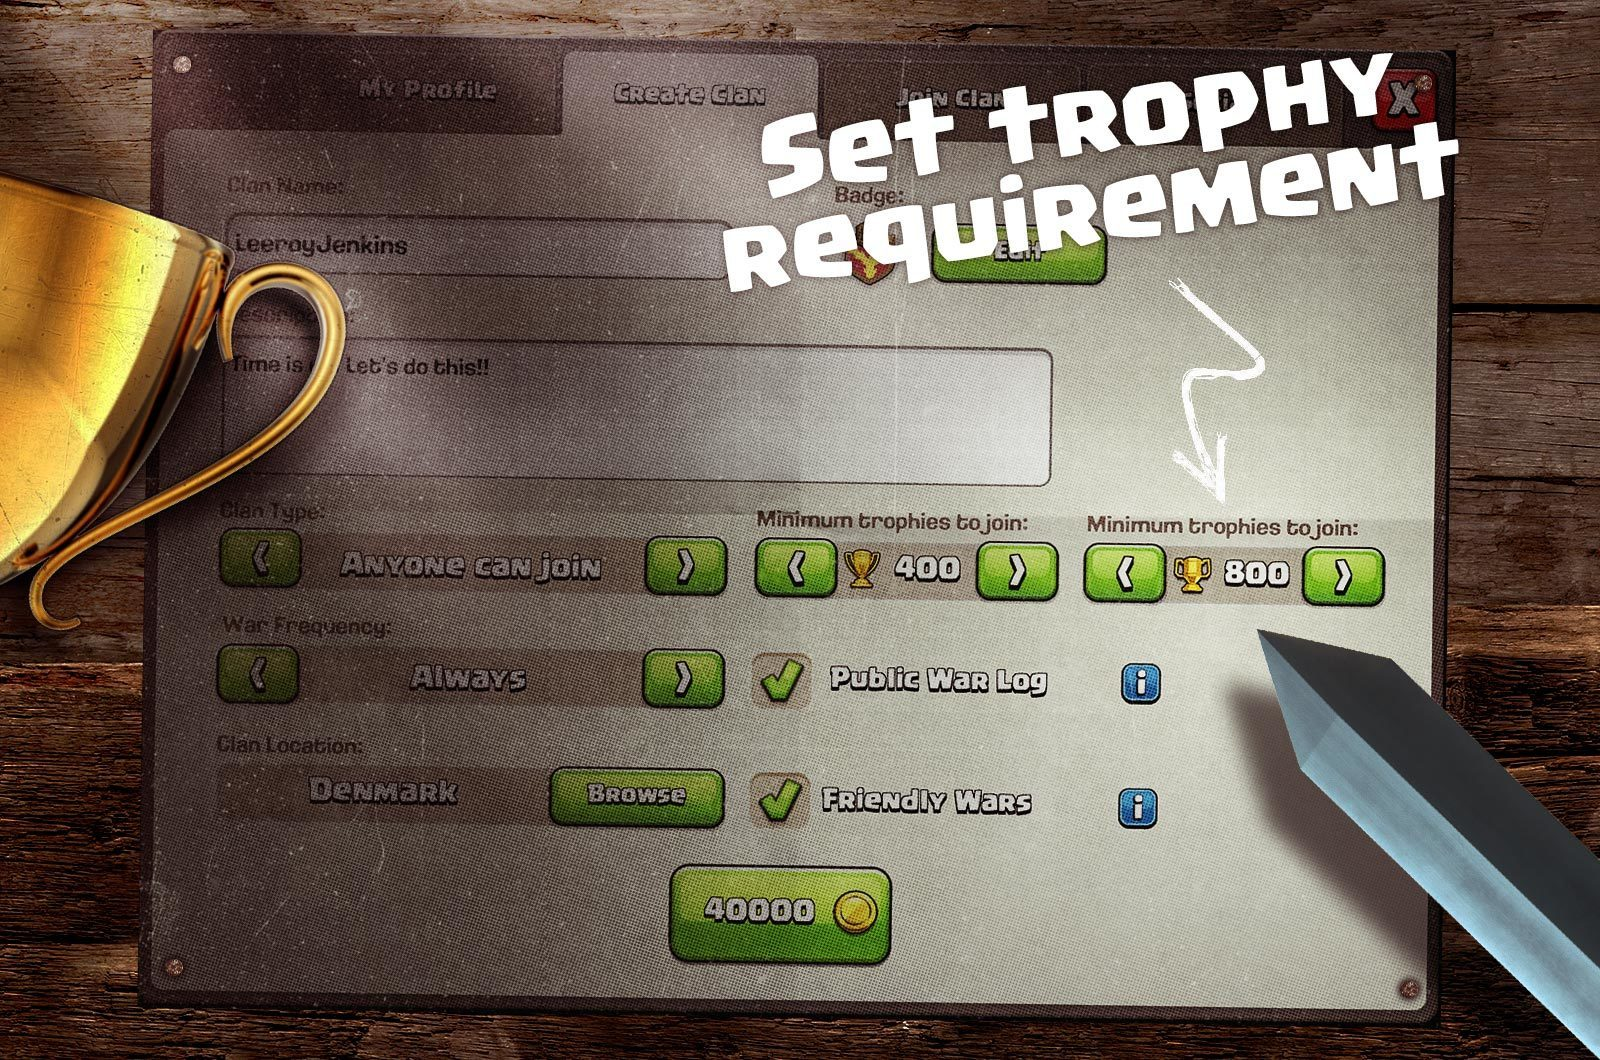 coc_oct_update_trophy_requirements.jpg?mtime=20171009042154#asset:4813